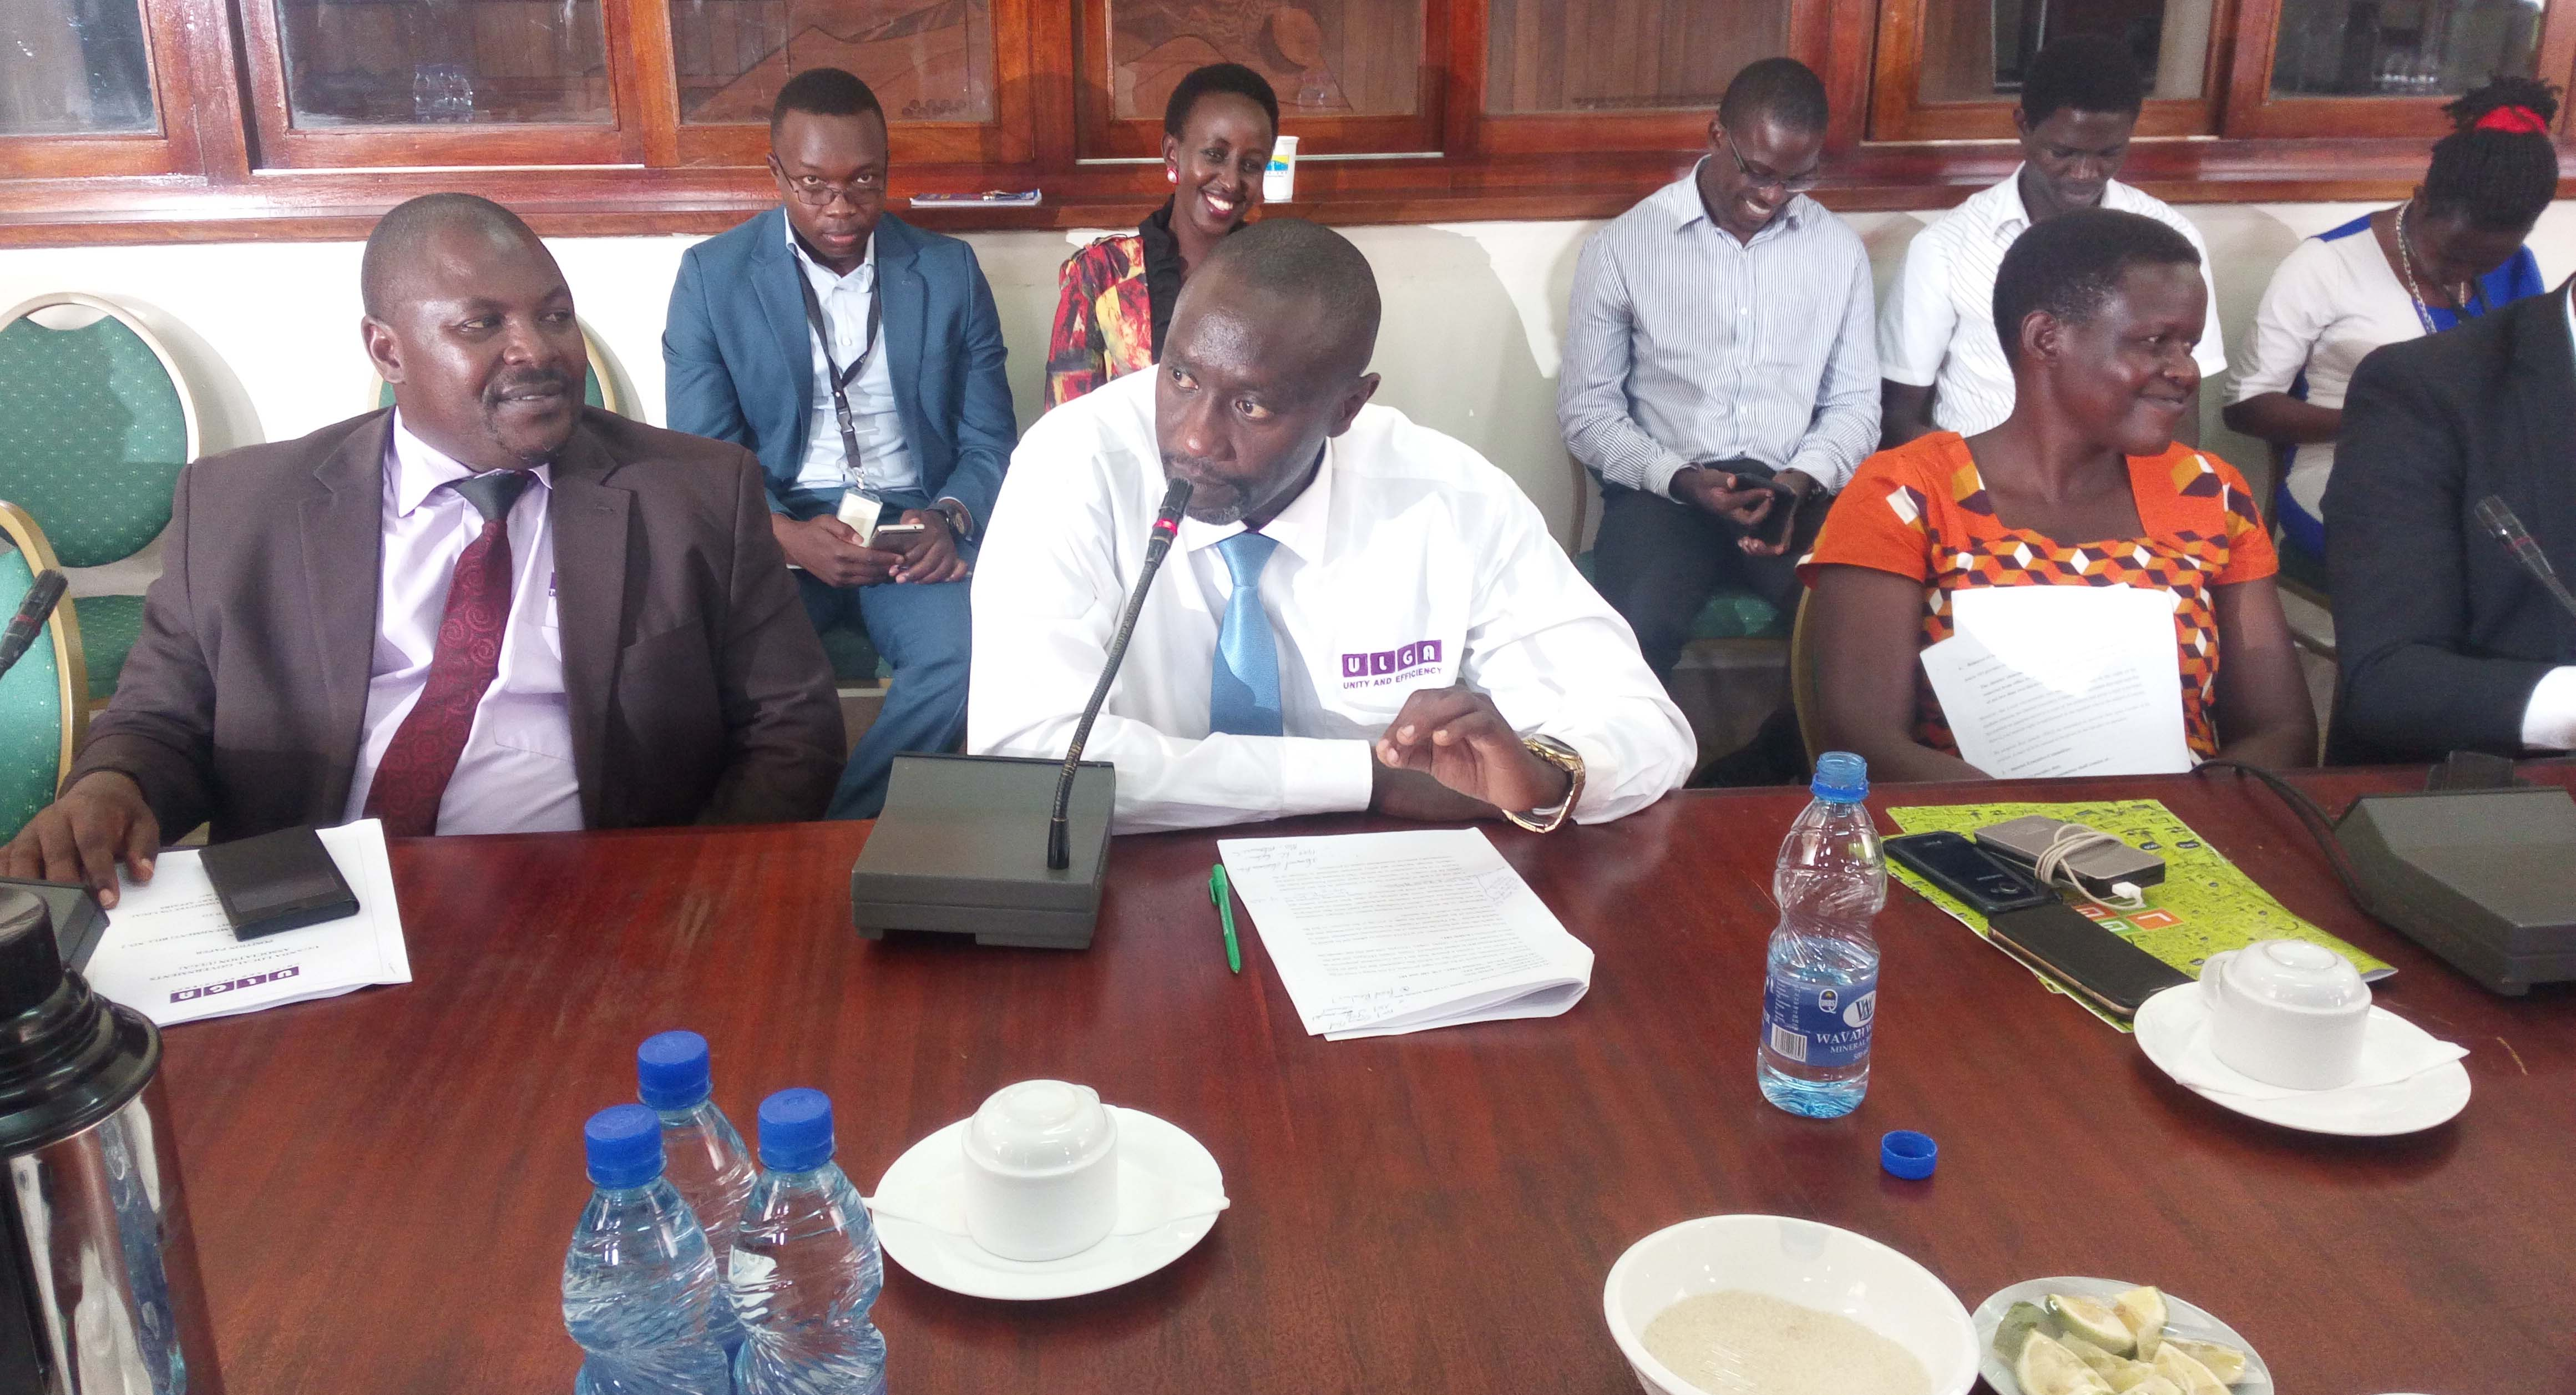 Mutabazi (center) appears with other ULGA officials